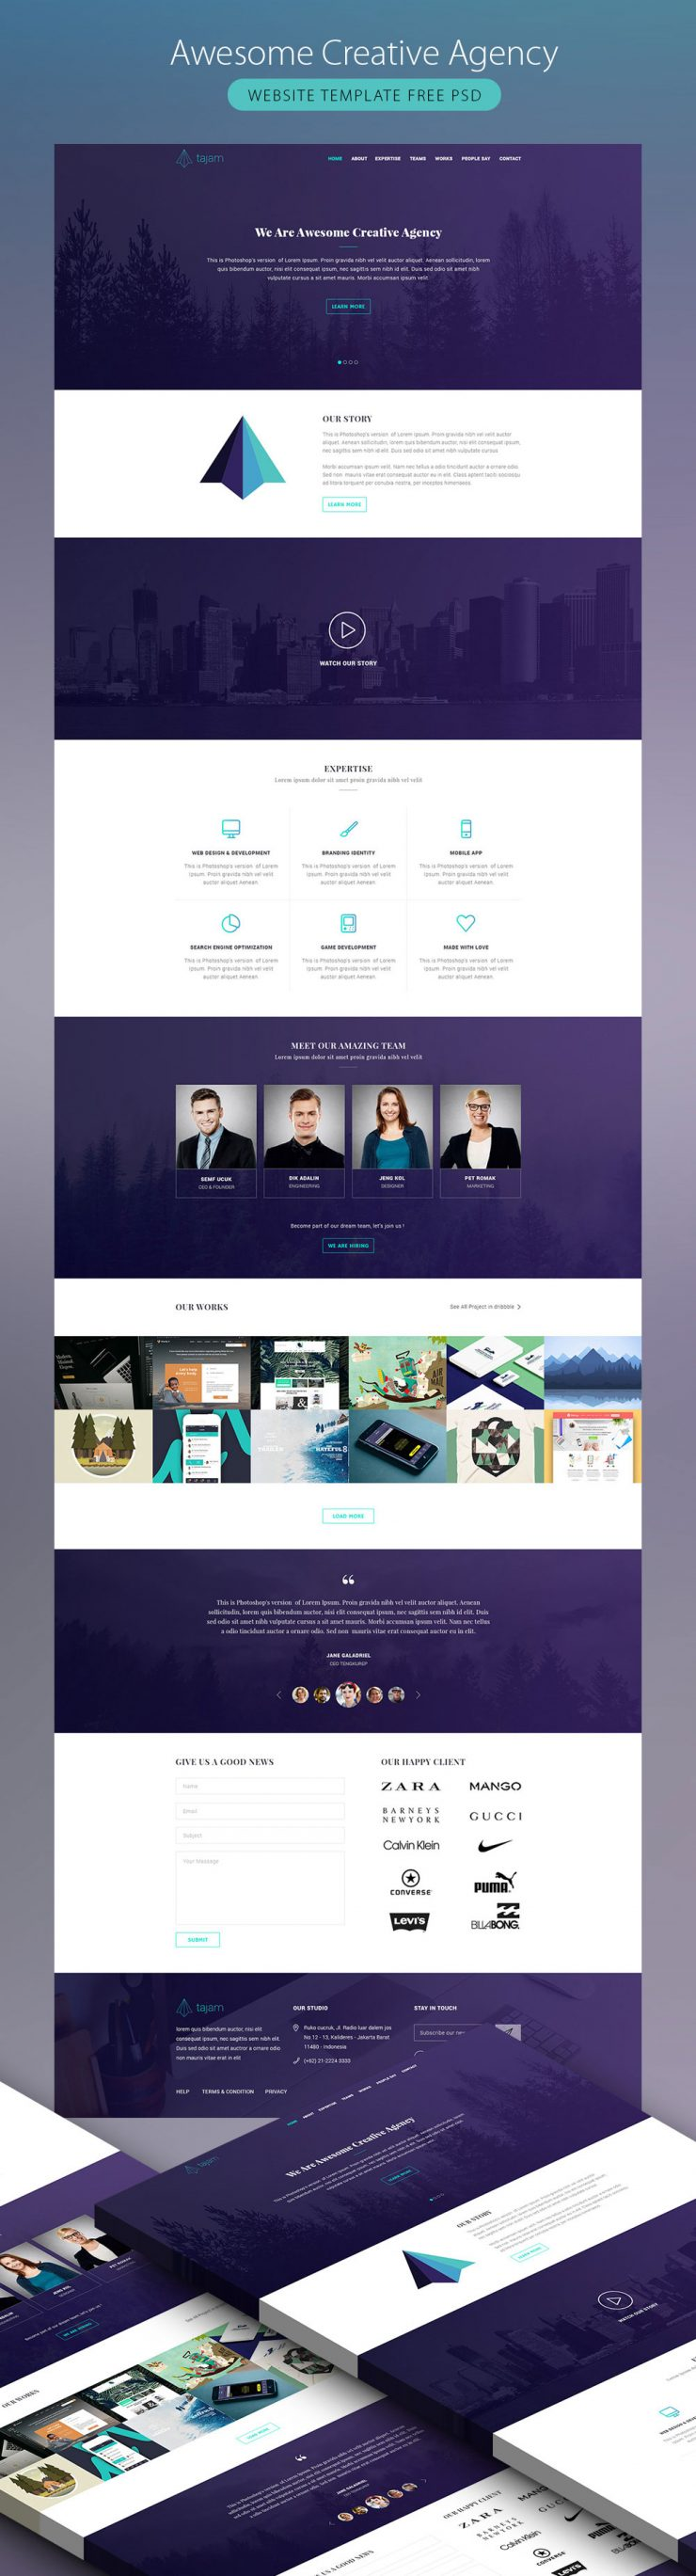 Awesome Creative Agency Website Template Free PSD www, Website Template, Website Layout, Website, webpage, webdesign, Web Template, Web Resources, web page, Web Layout, Web Interface, Web Elements, Web Design, Web, UX, User Interface, unique, UI, Template, Stylish, Single Page, Simple, Services, Resources, Quality, purple, Psd Templates, PSD, Premium, Portfolio, original, onepage, official, new, Modern, marketing, Landing Page, Homepage, Fresh, freemium, Freebie, Free PSD, Free, Flat, Elements, Download, detailed, Design, Creative, Corporate, Clean, Business, Blue, awesome, agency,